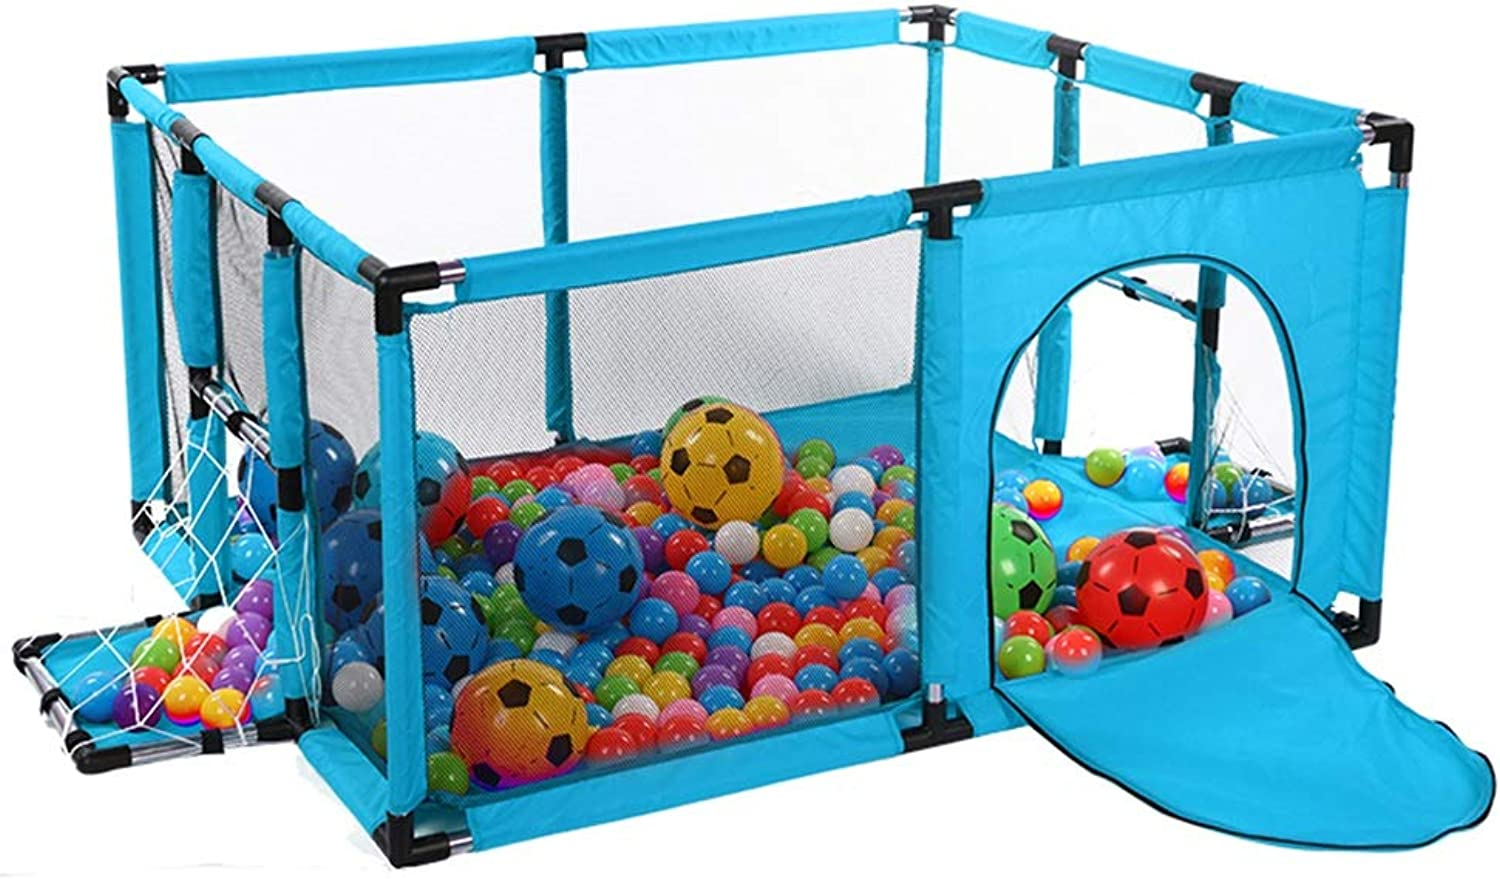 Portable Playard with Football, Play Pen for Infants and Babies, Lightweight Mesh Baby Playpen Ocean Ball Pool, 120x100x62cm (color   bluee)